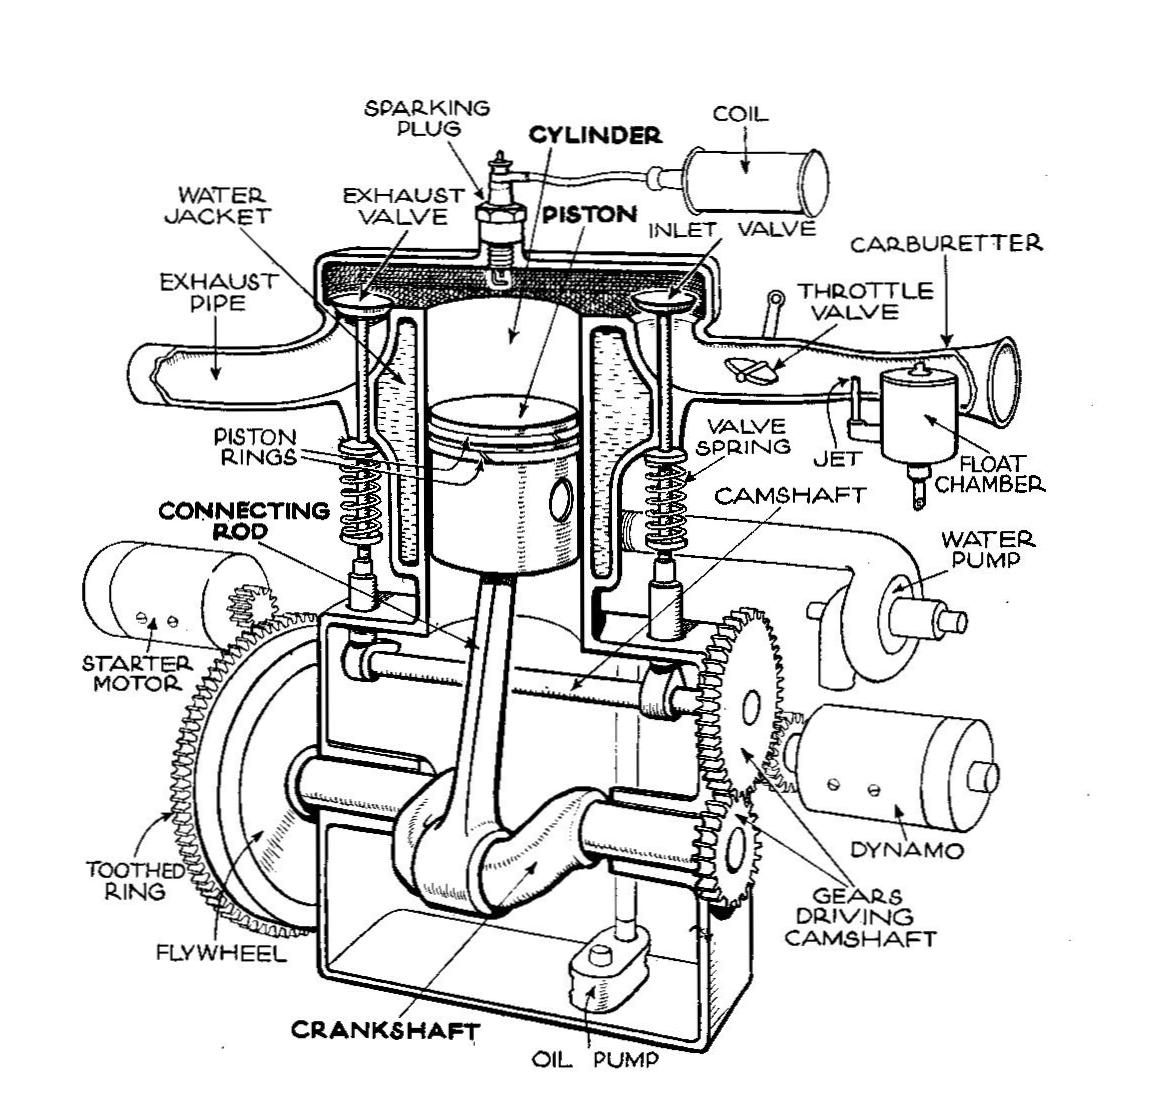 File:Single Cylinder_T Head_engine_(Autocar_Handbook,_13th_ed,_1935) on Buick 3 8 Series 2 Engine